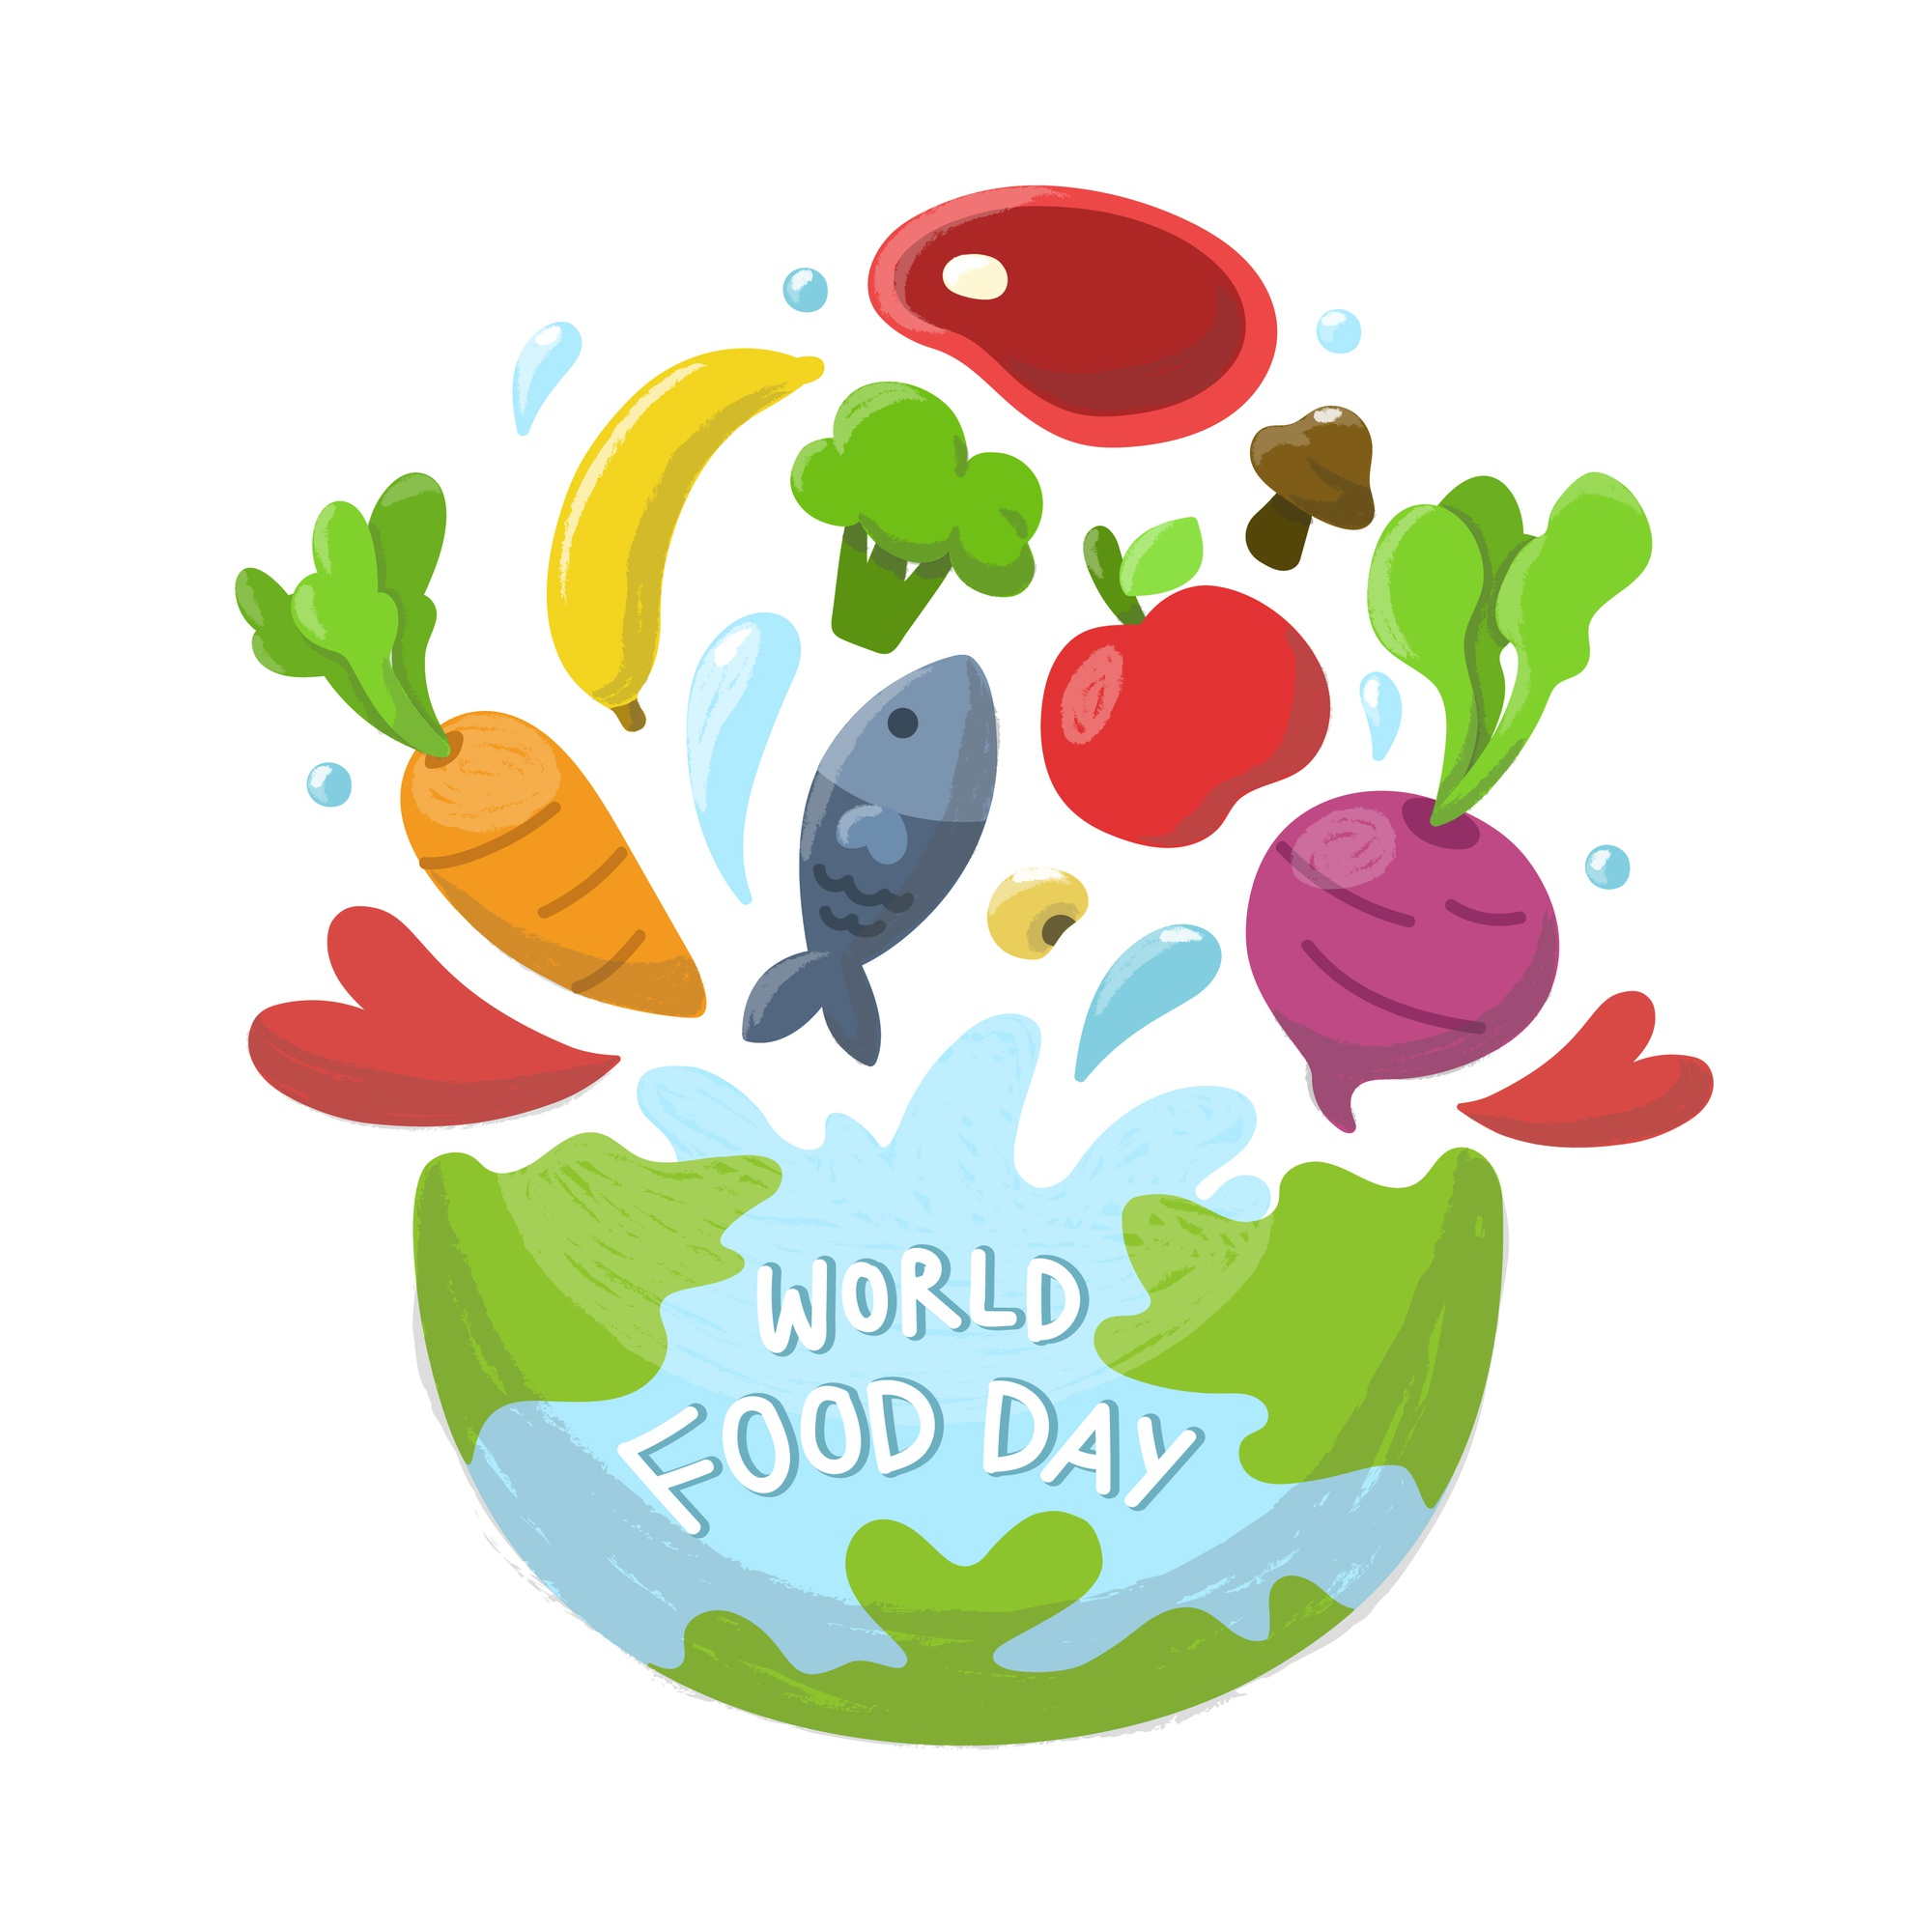 World food day background.